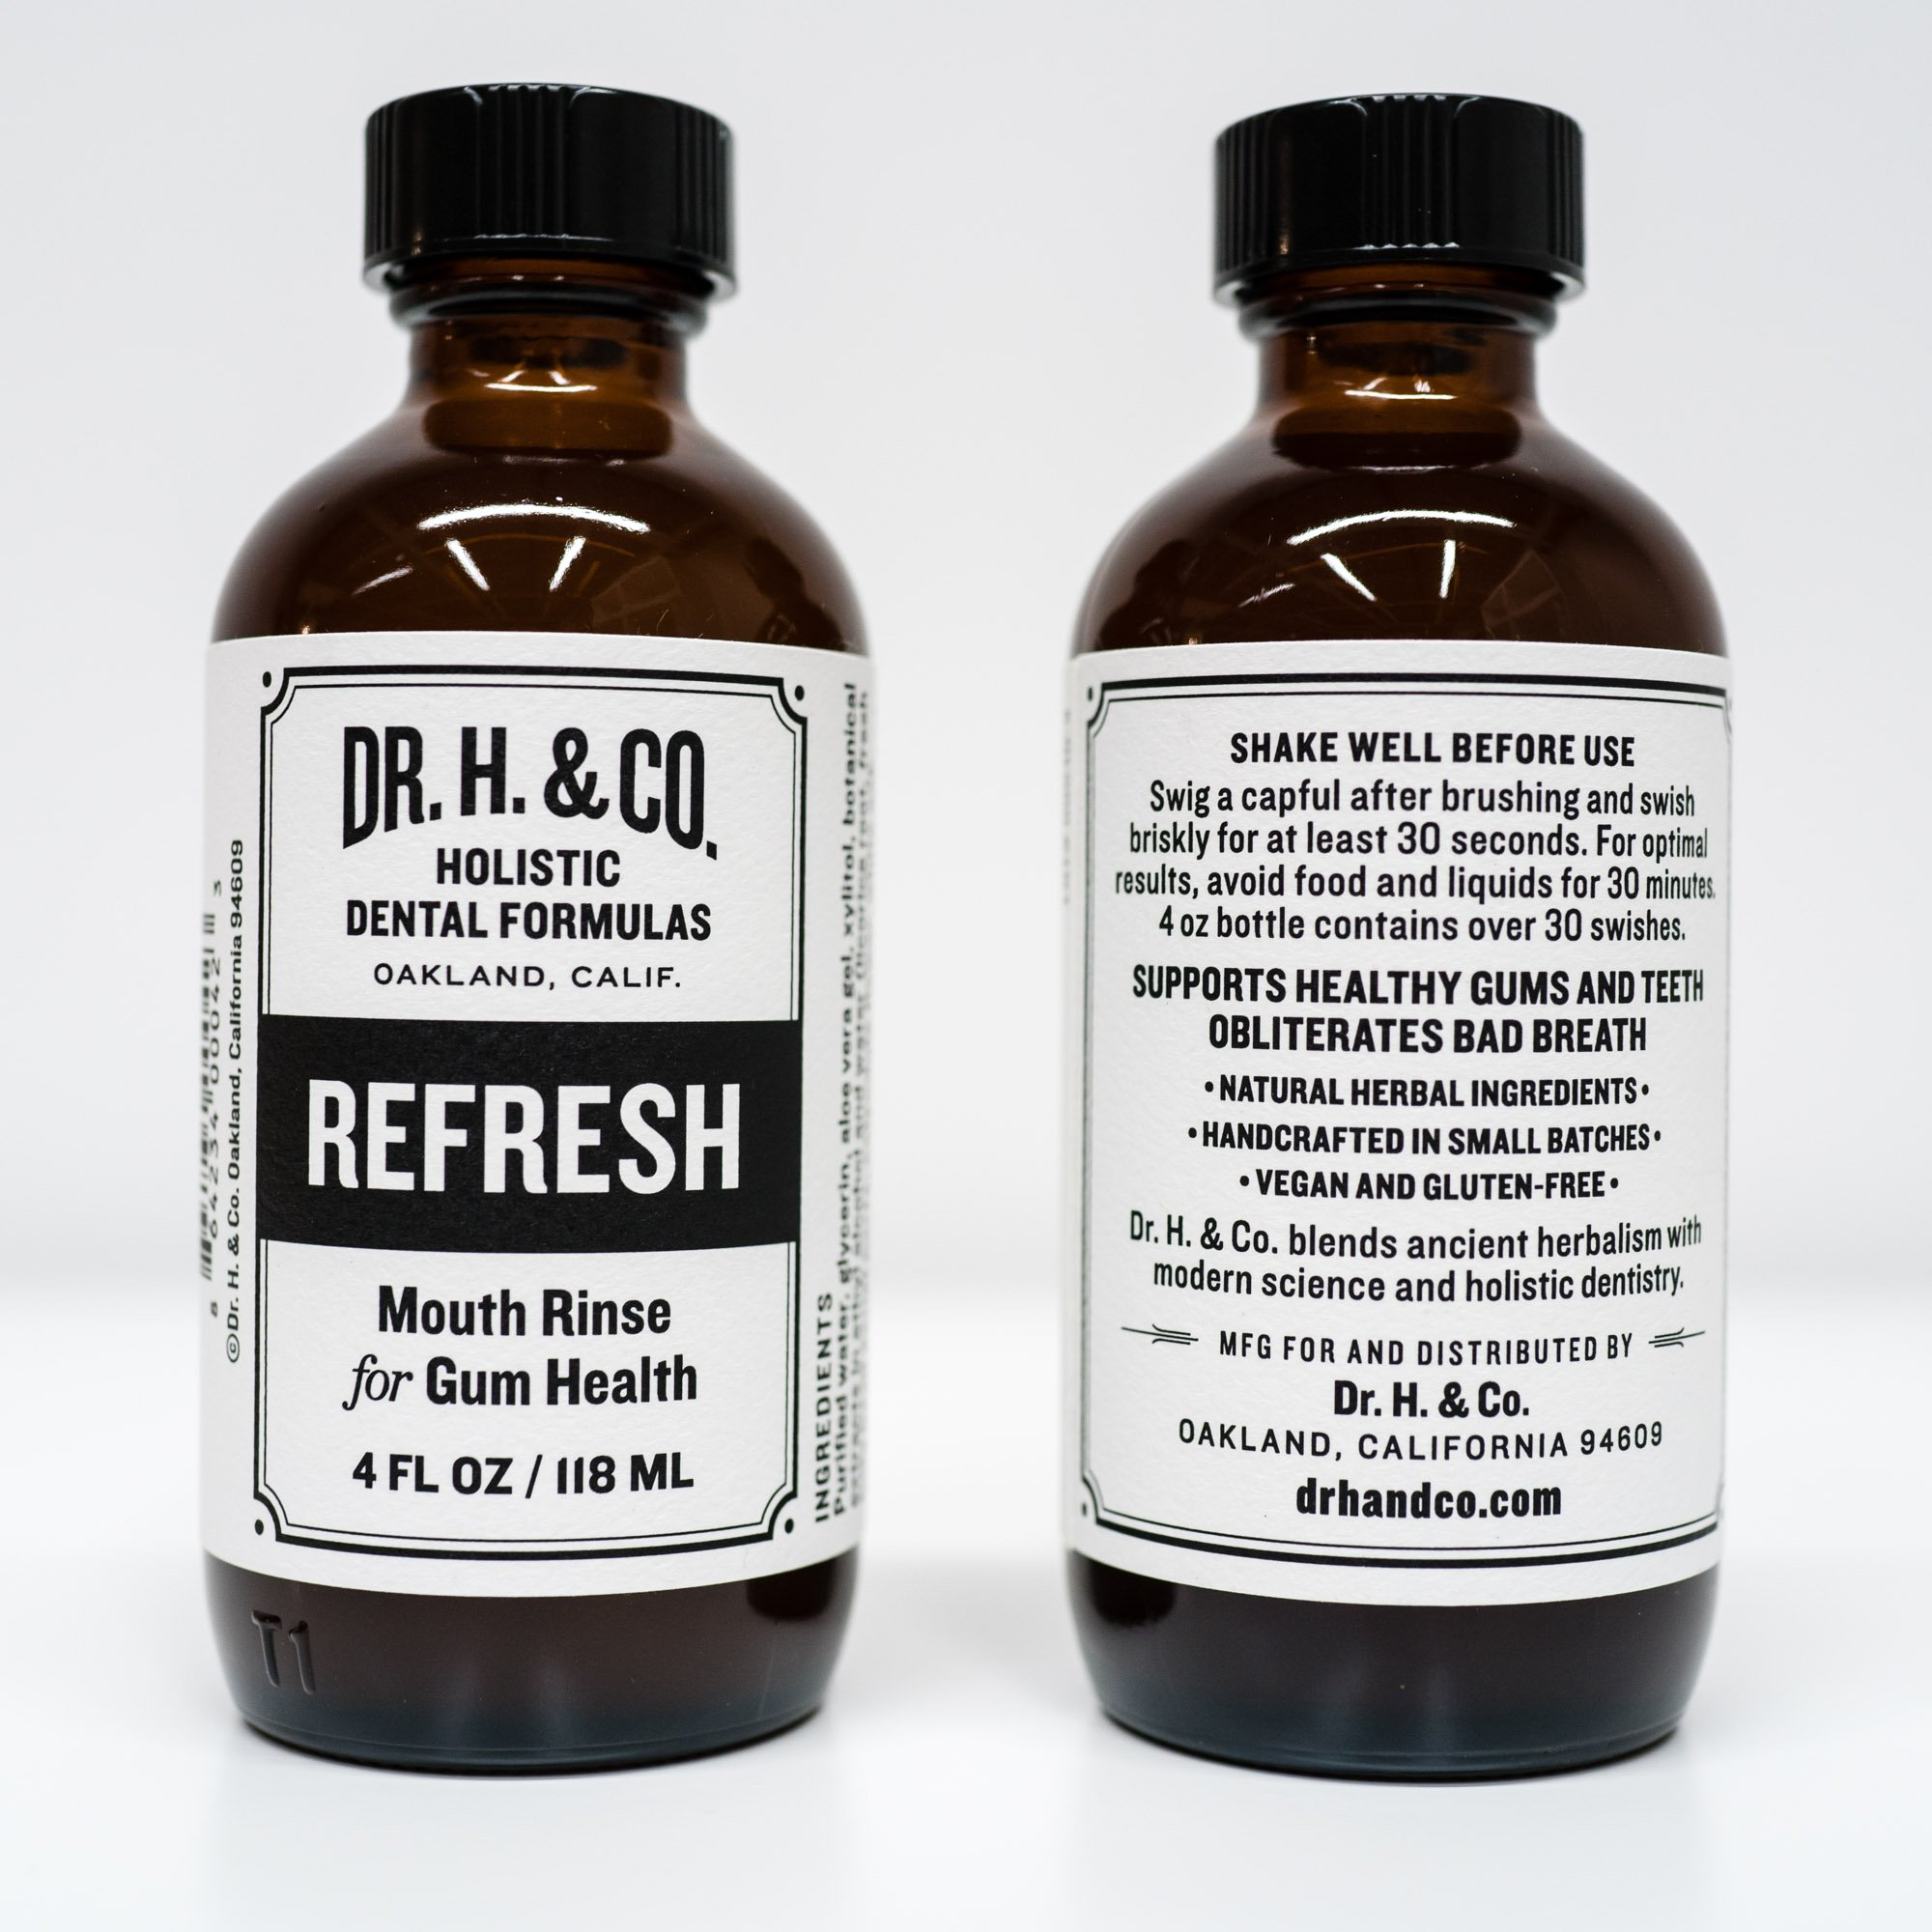 Dr. H. & Co. Dentist Formulated Refresh Mouthwash Ð All Natural Herbal and Holistic Mouth Rinse for Healthy Gums and Teeth (4 oz Glass Bottle) by Dr. H. & Co. (Image #3)